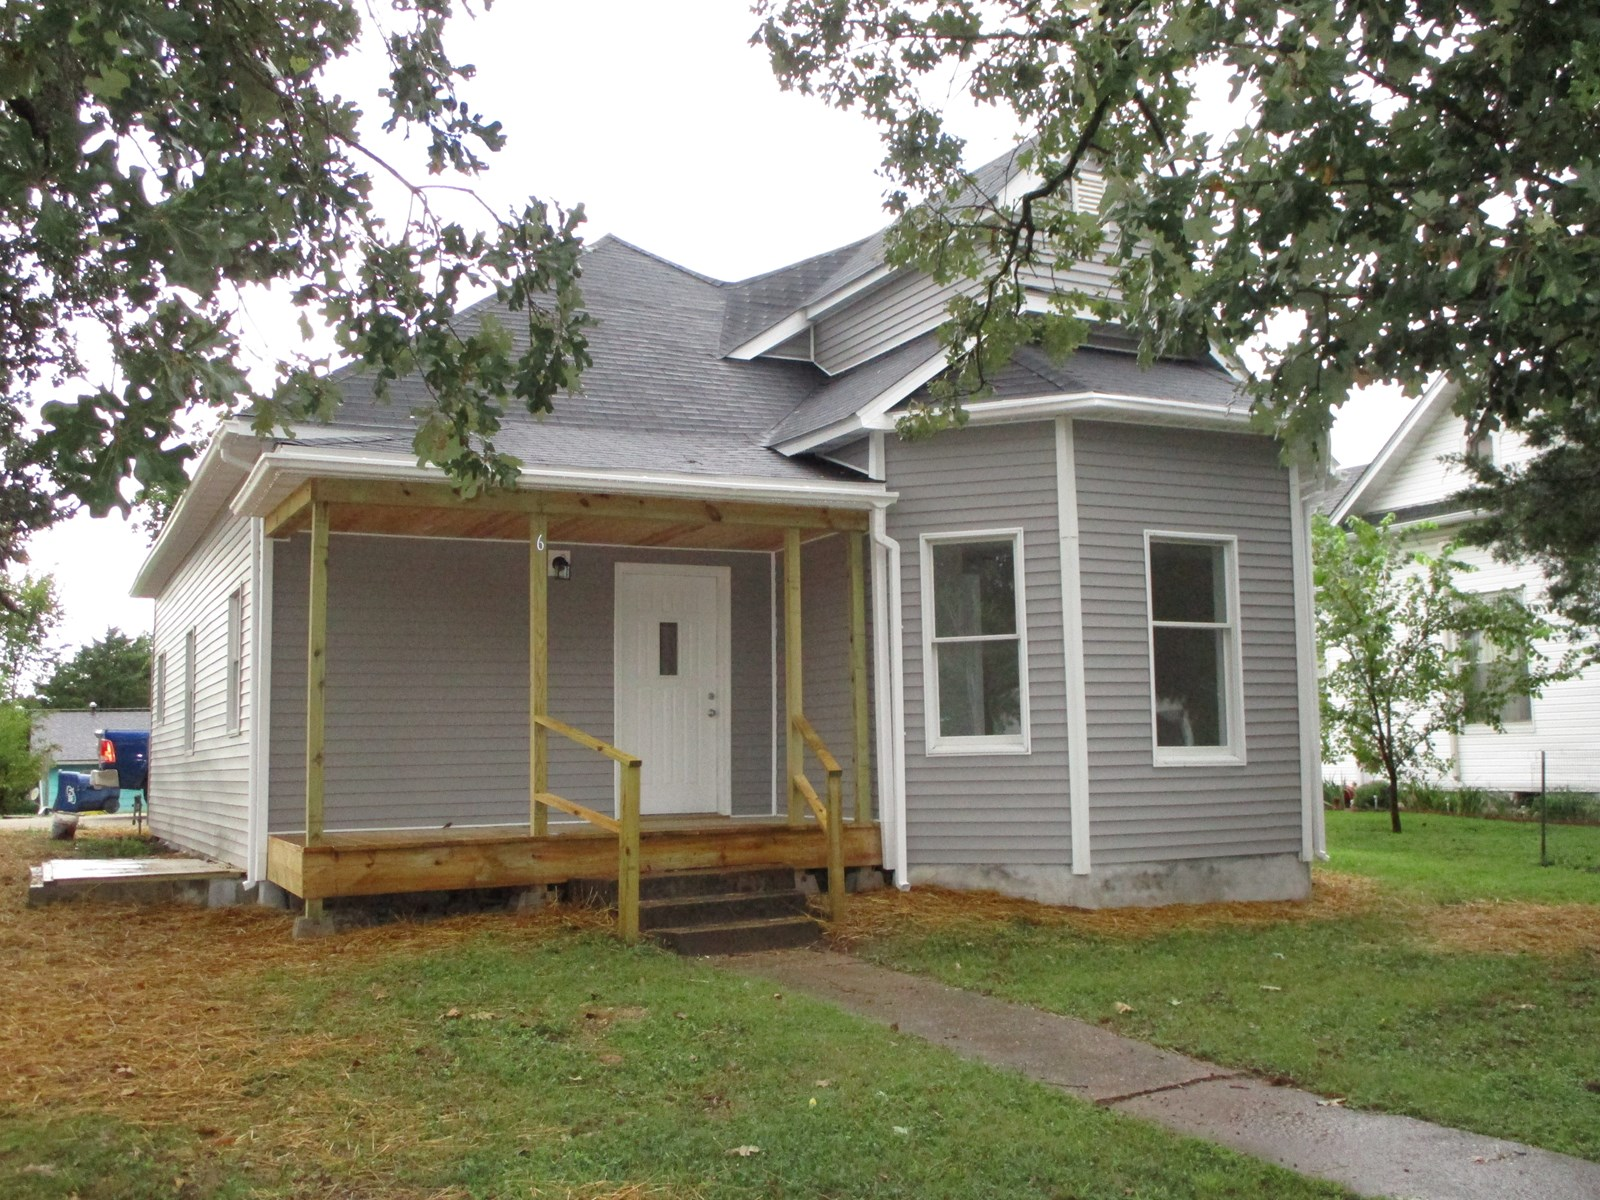 3 bedroom renovated home in Salem! Move in ready.